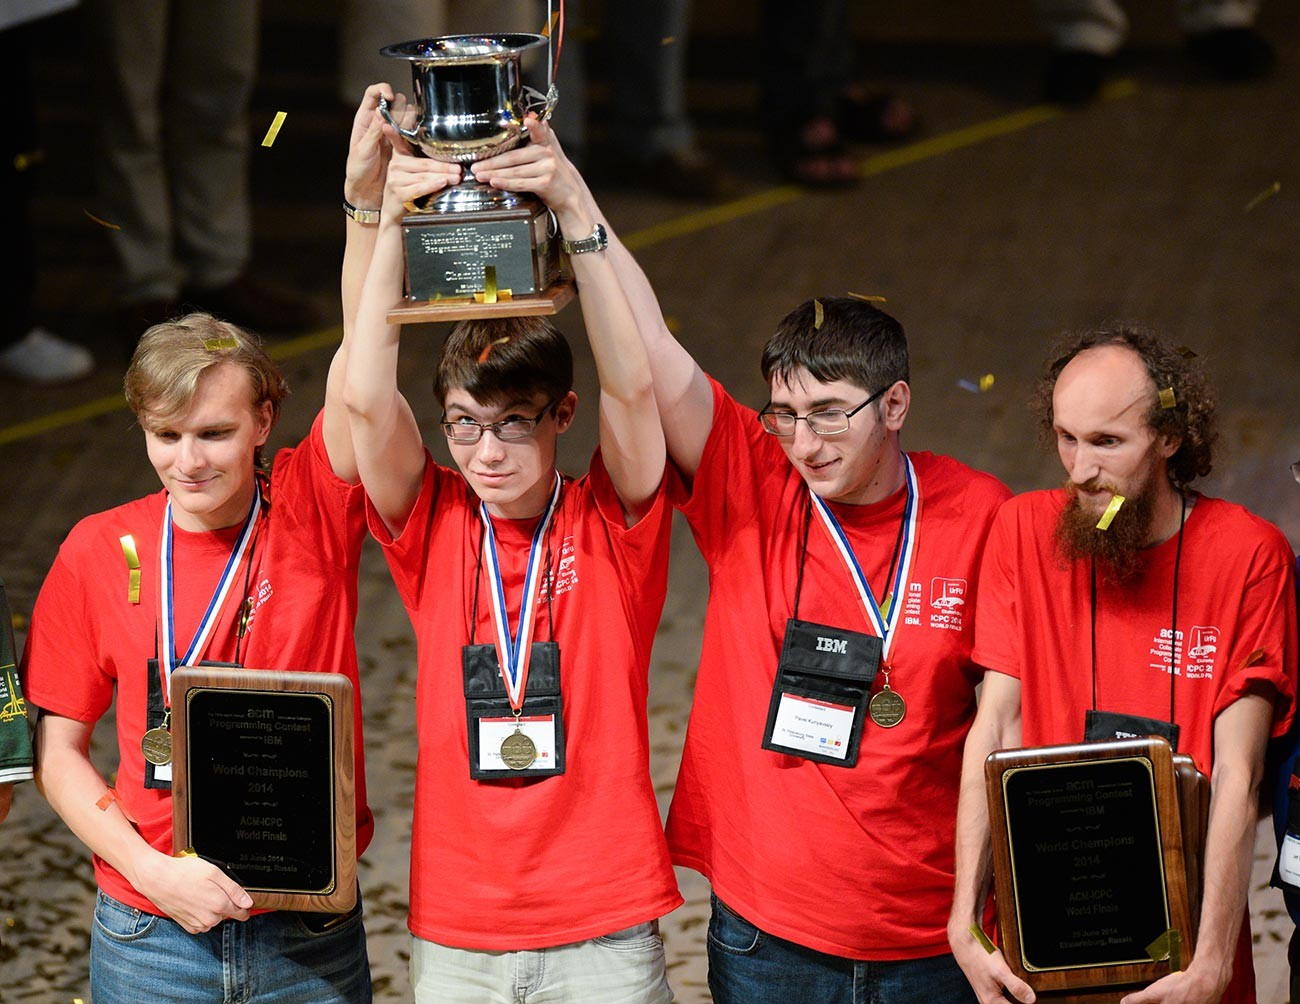 Tim Universitas Negeri Saint Petersburg, pemenang final ICPC ke-38 (2018).